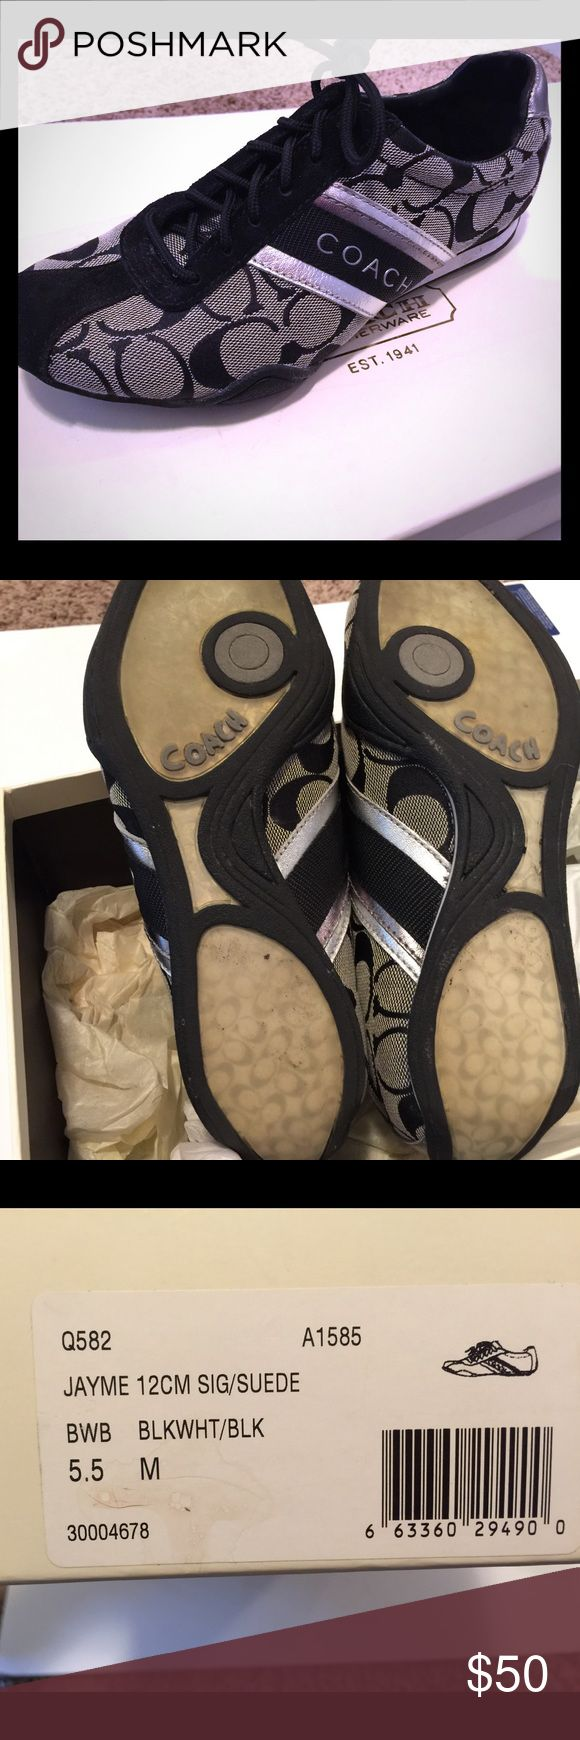 Coach tennis shoes size 5.5 Coach sneakers . Lightly worn . Size 5.5 Coach Shoes Sneakers